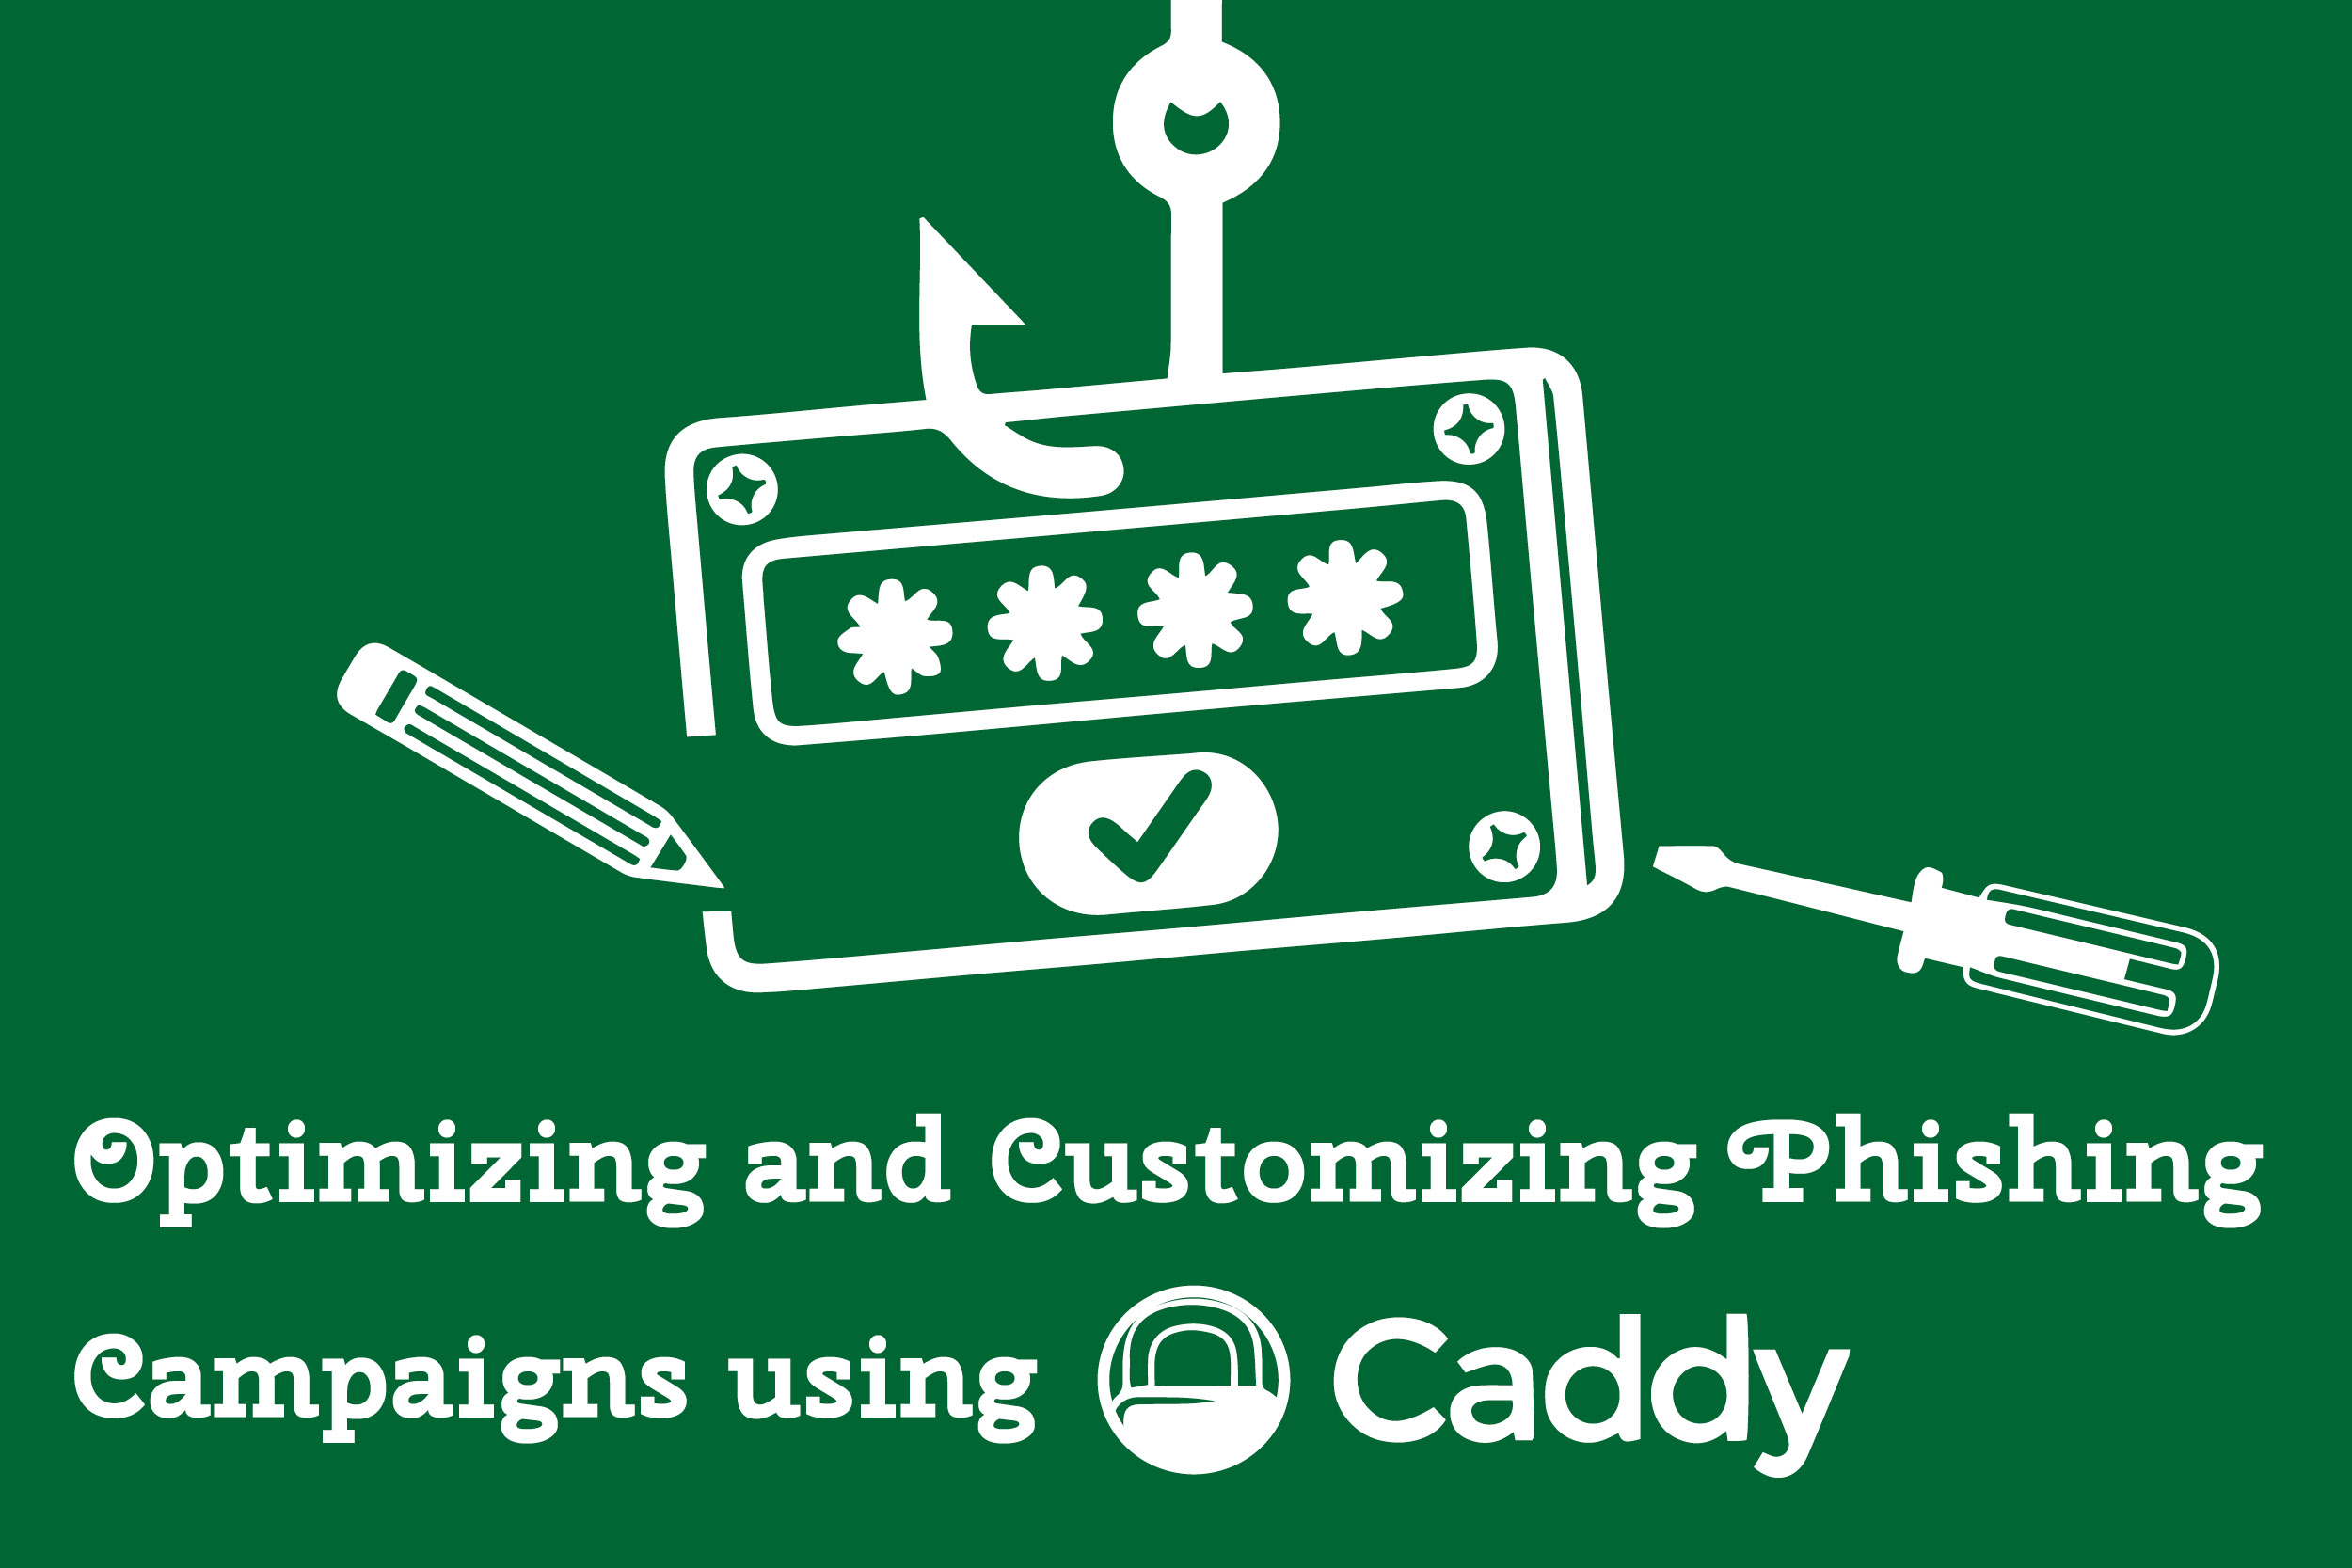 Optimizing and Customizing Phishing Campaigns using Caddy - TrustedSec